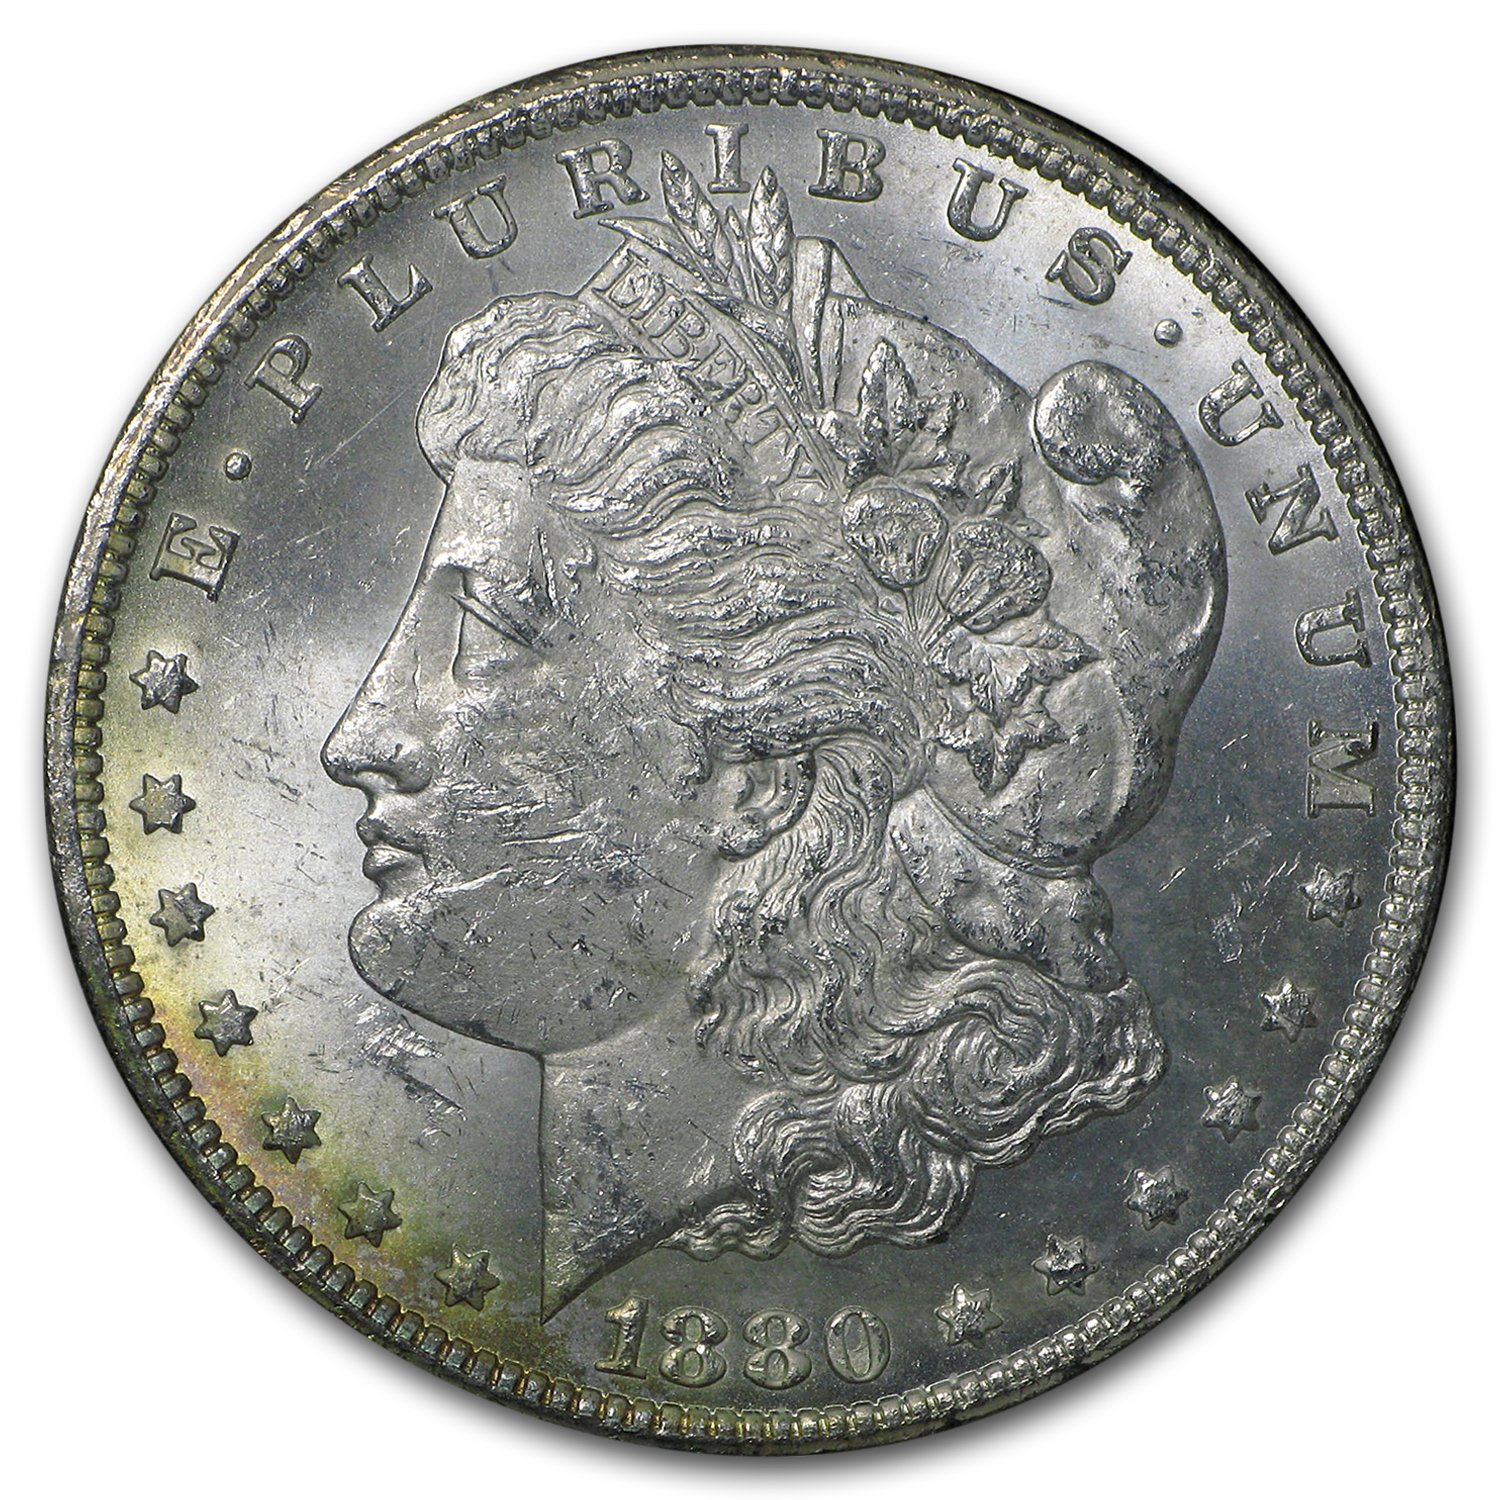 1880-CC 80/79 Rev of 78 Morgan Dollar MS-61 NGC (VAM-4, GSA)